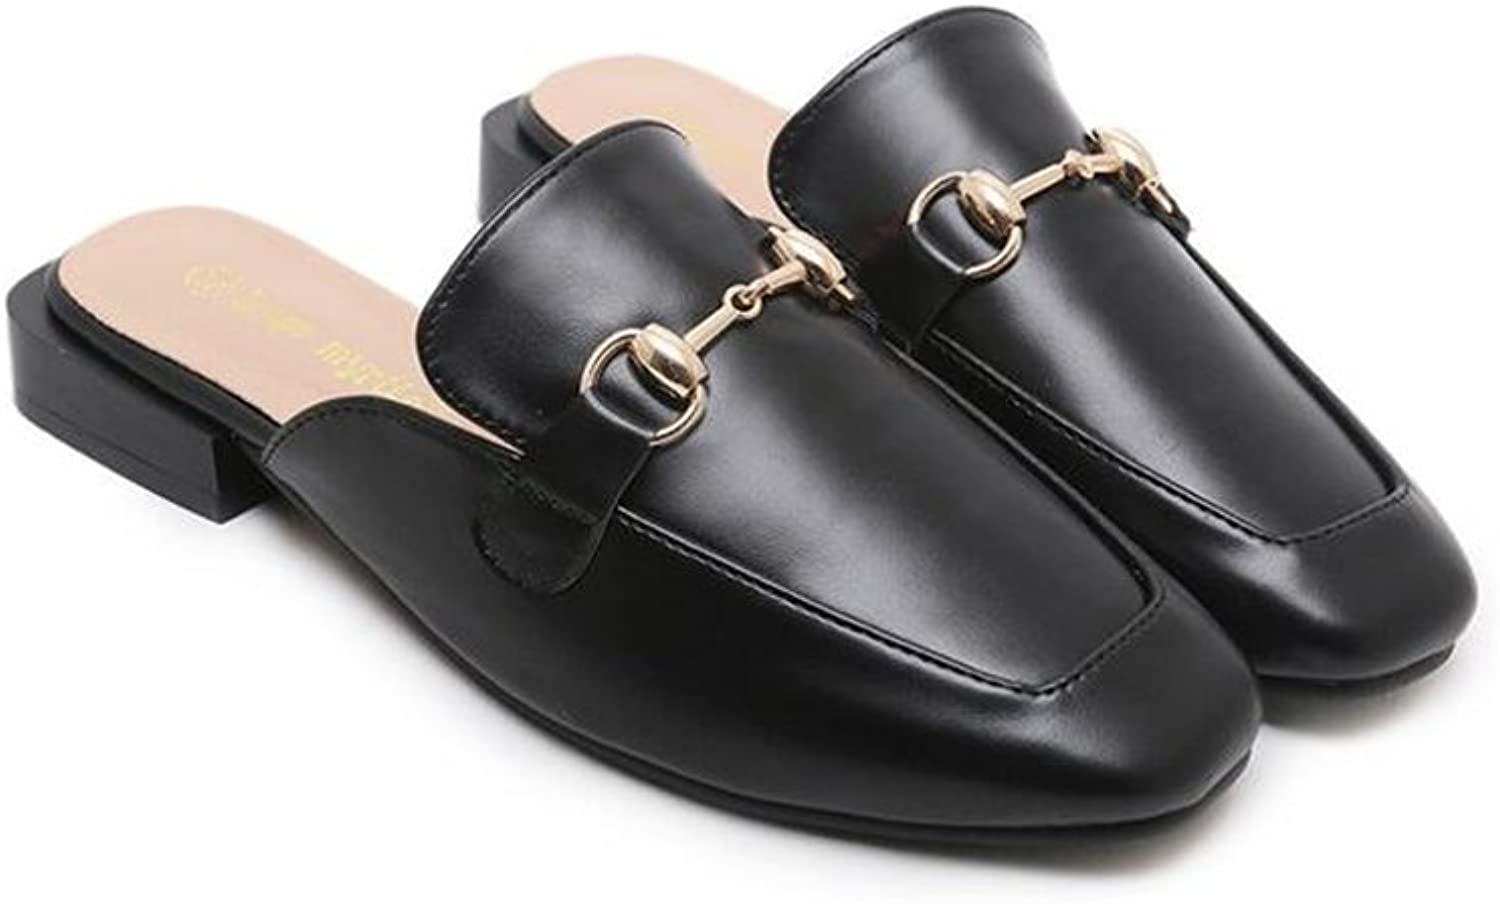 Bon Soir Women's Backless Loafers Leisure Leather Oxford Slipper Slip-On Casual Loafer Flats shoes